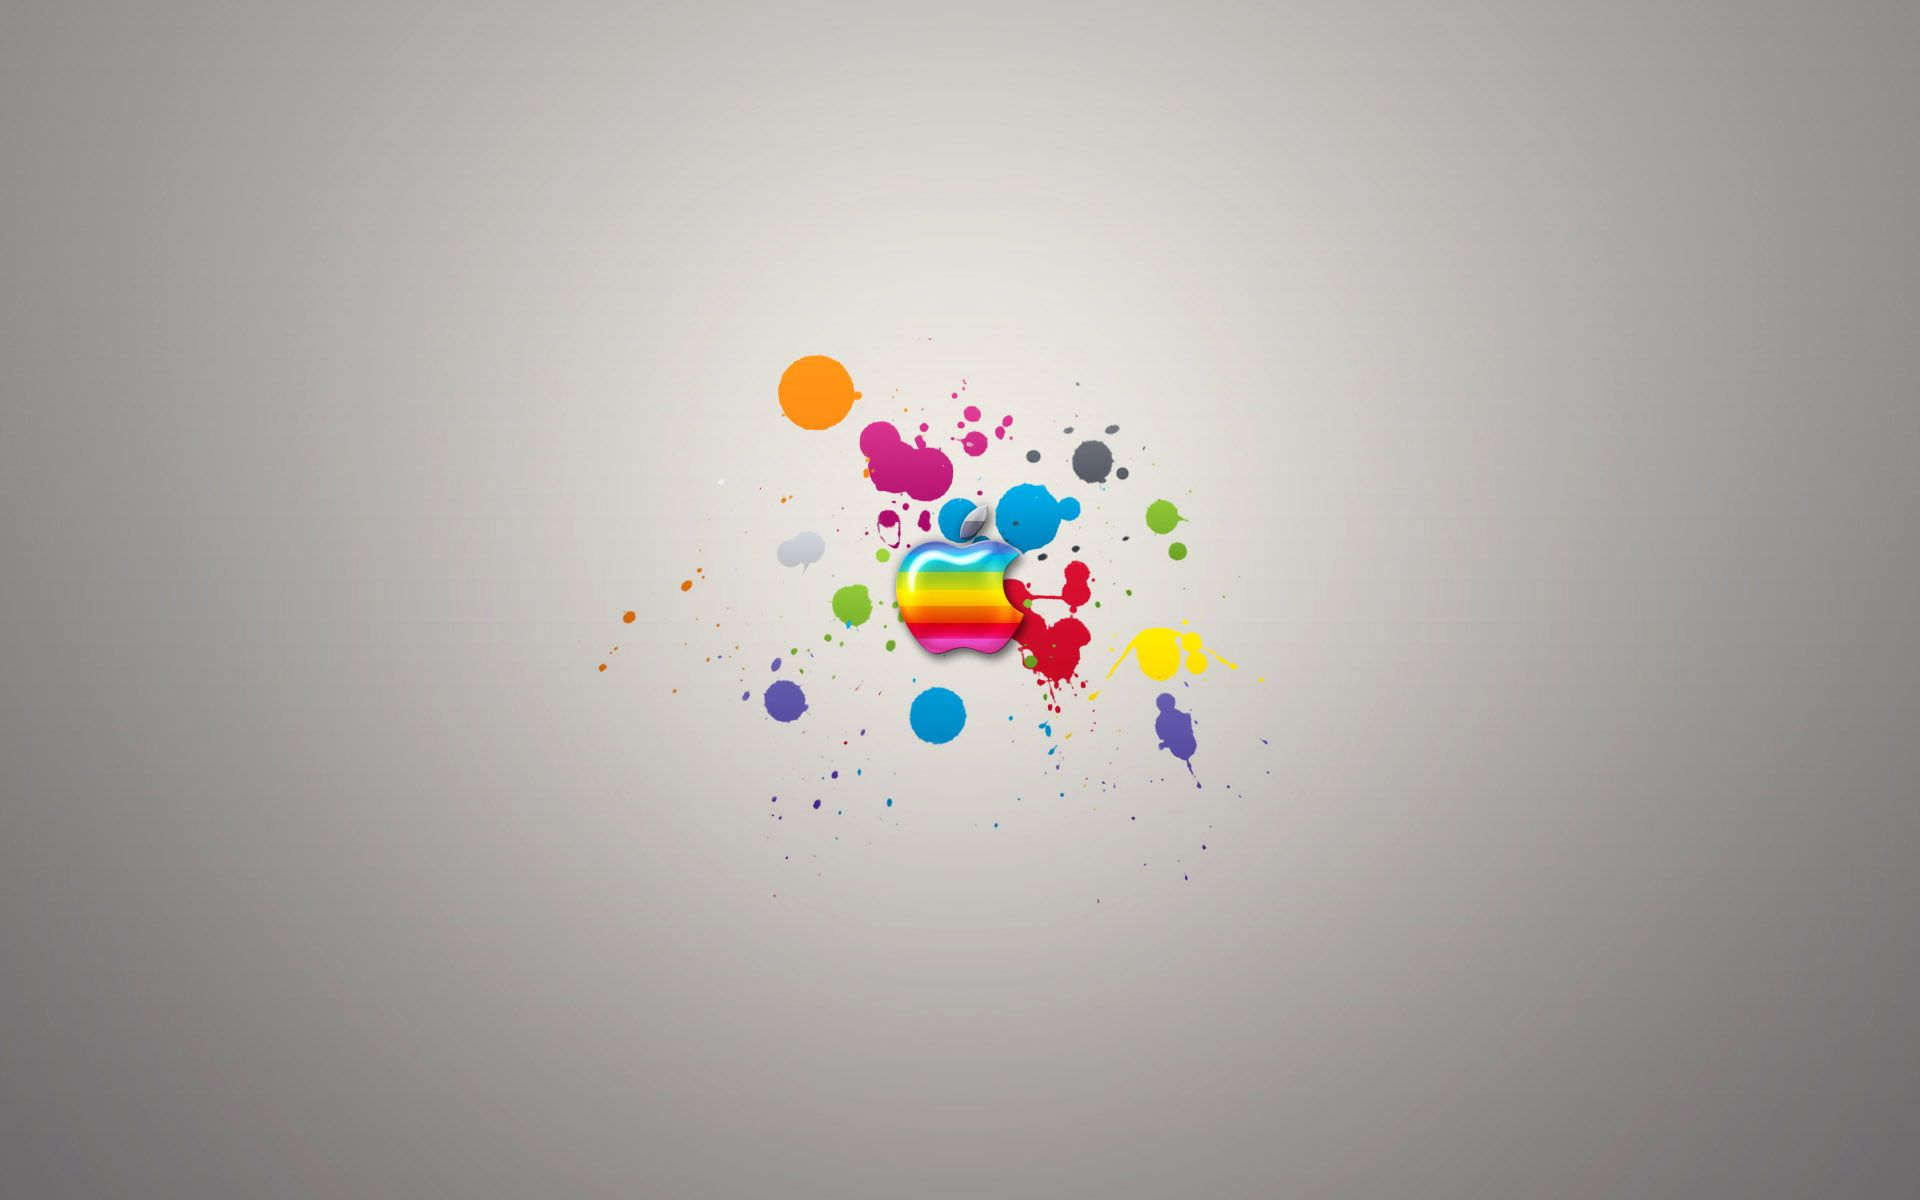 Glassy colors of apple wide hd wallpapers high definition